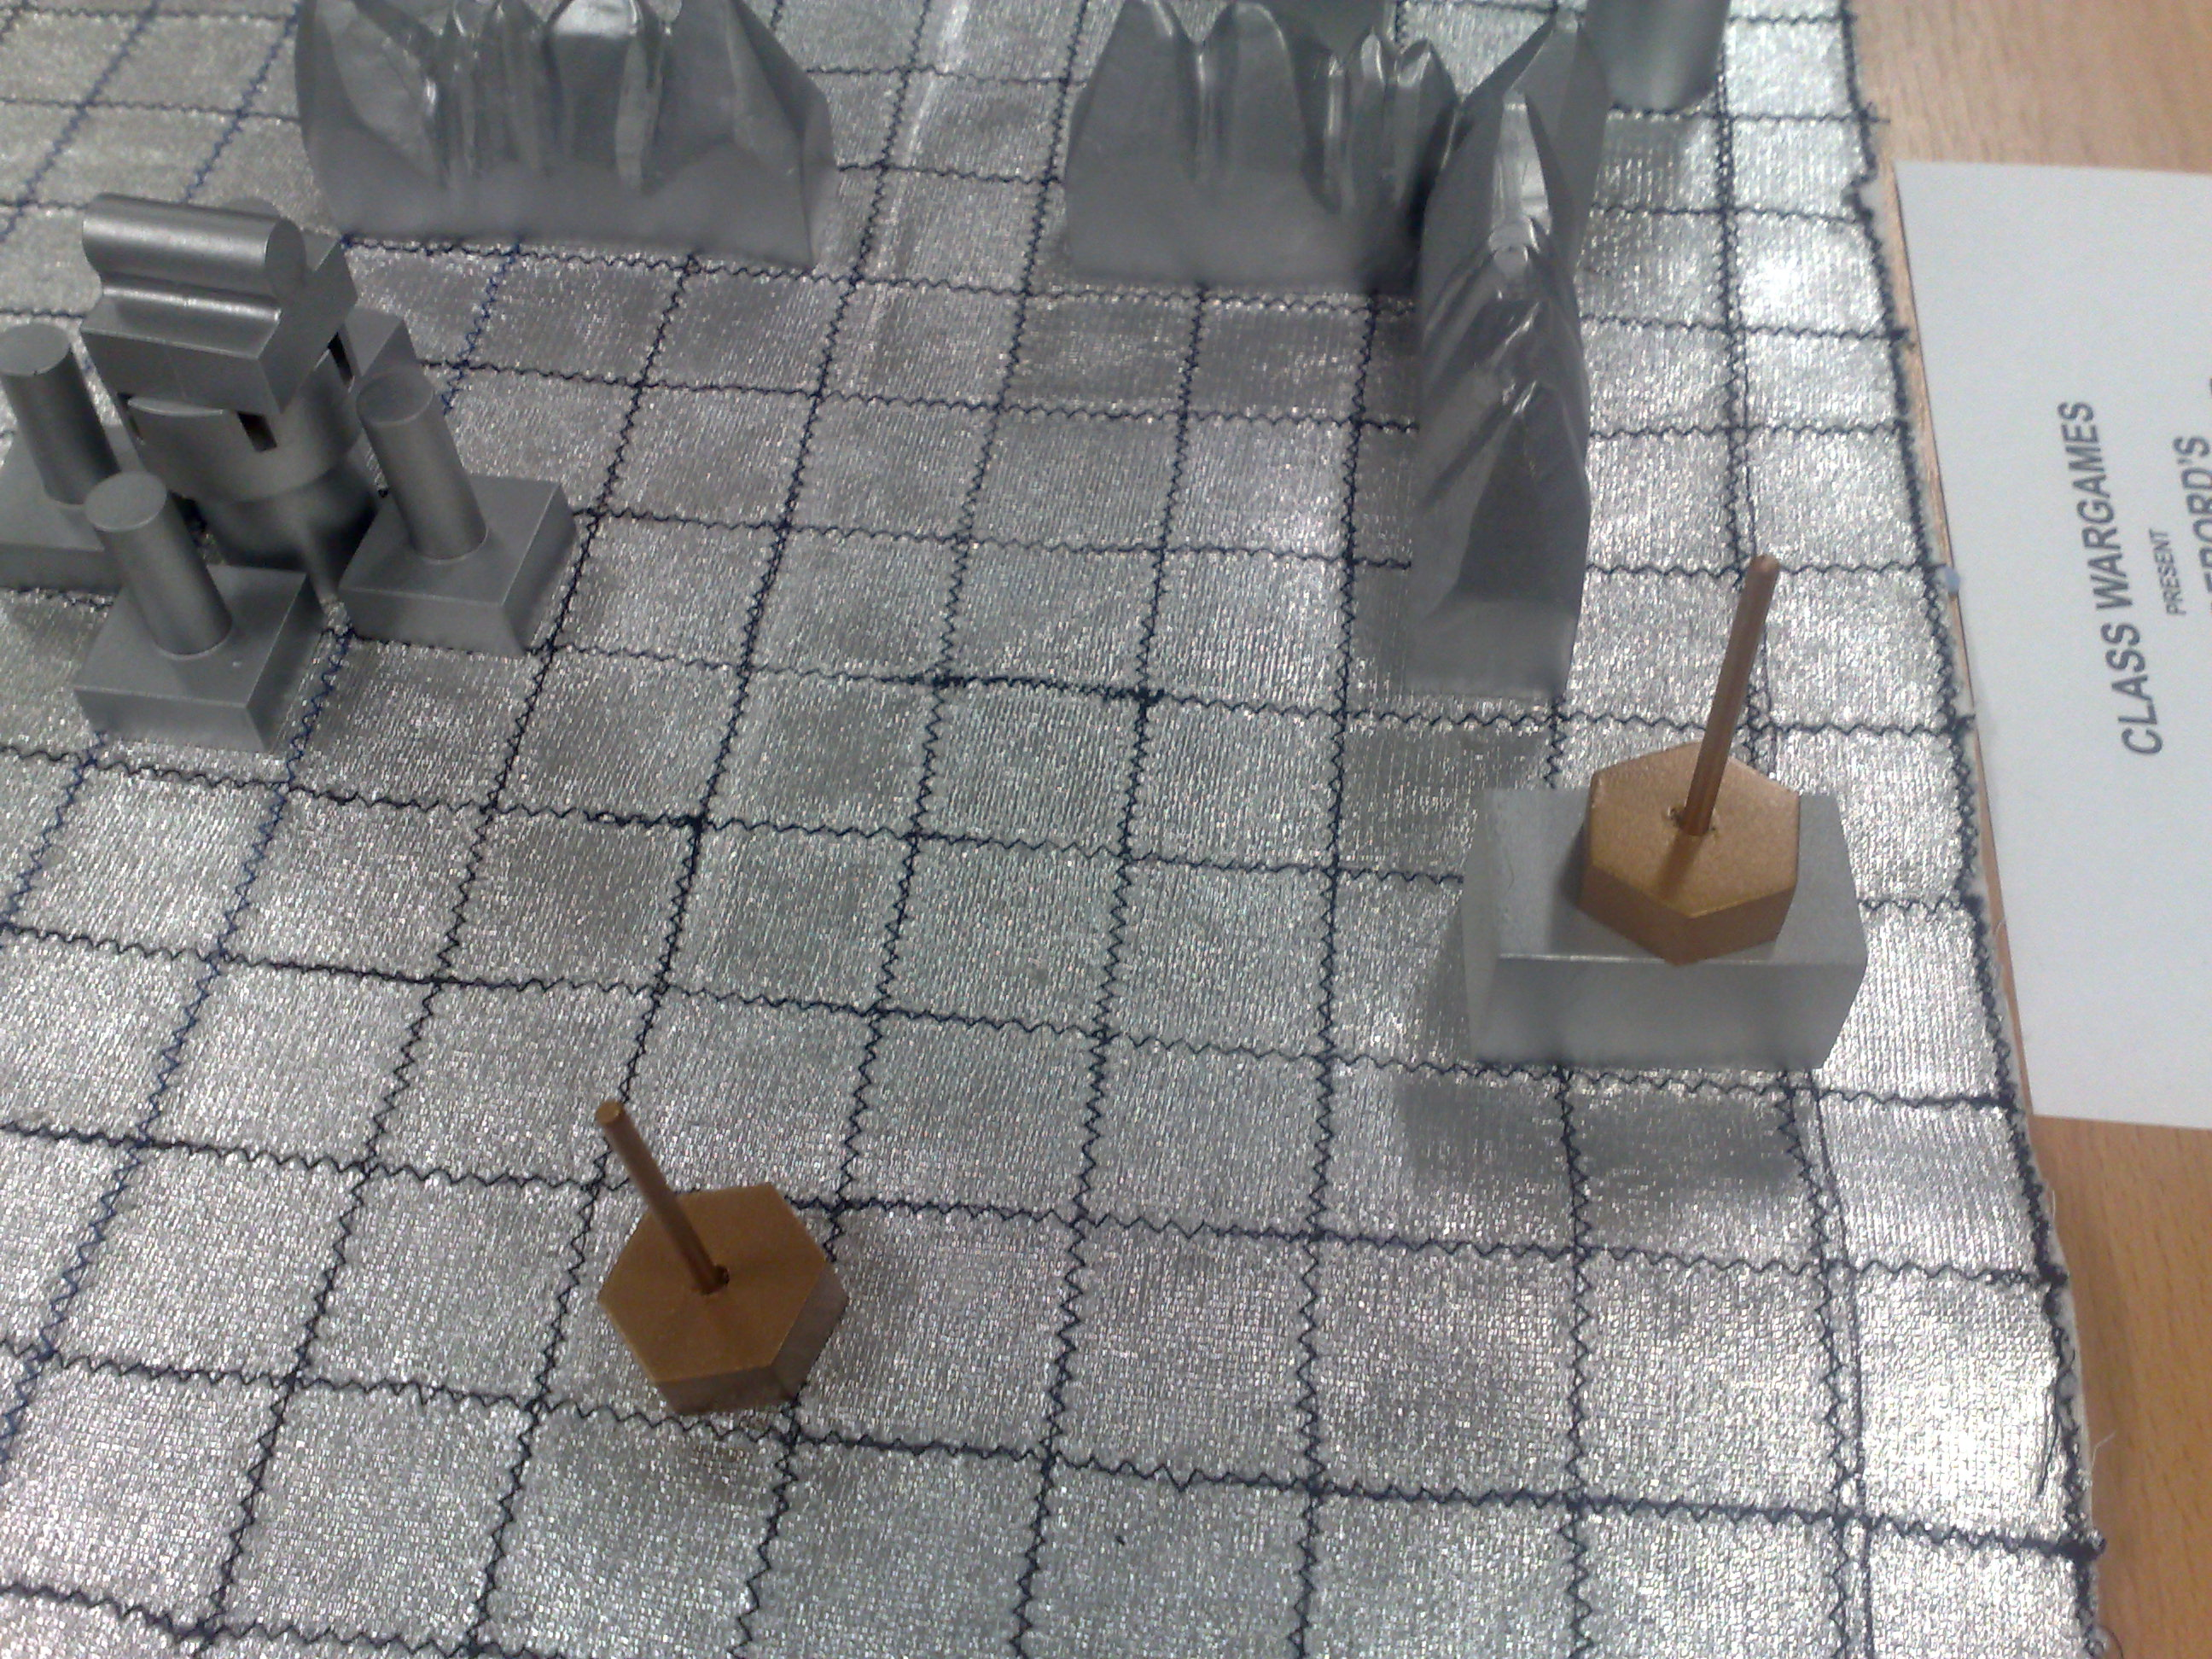 game_position_3